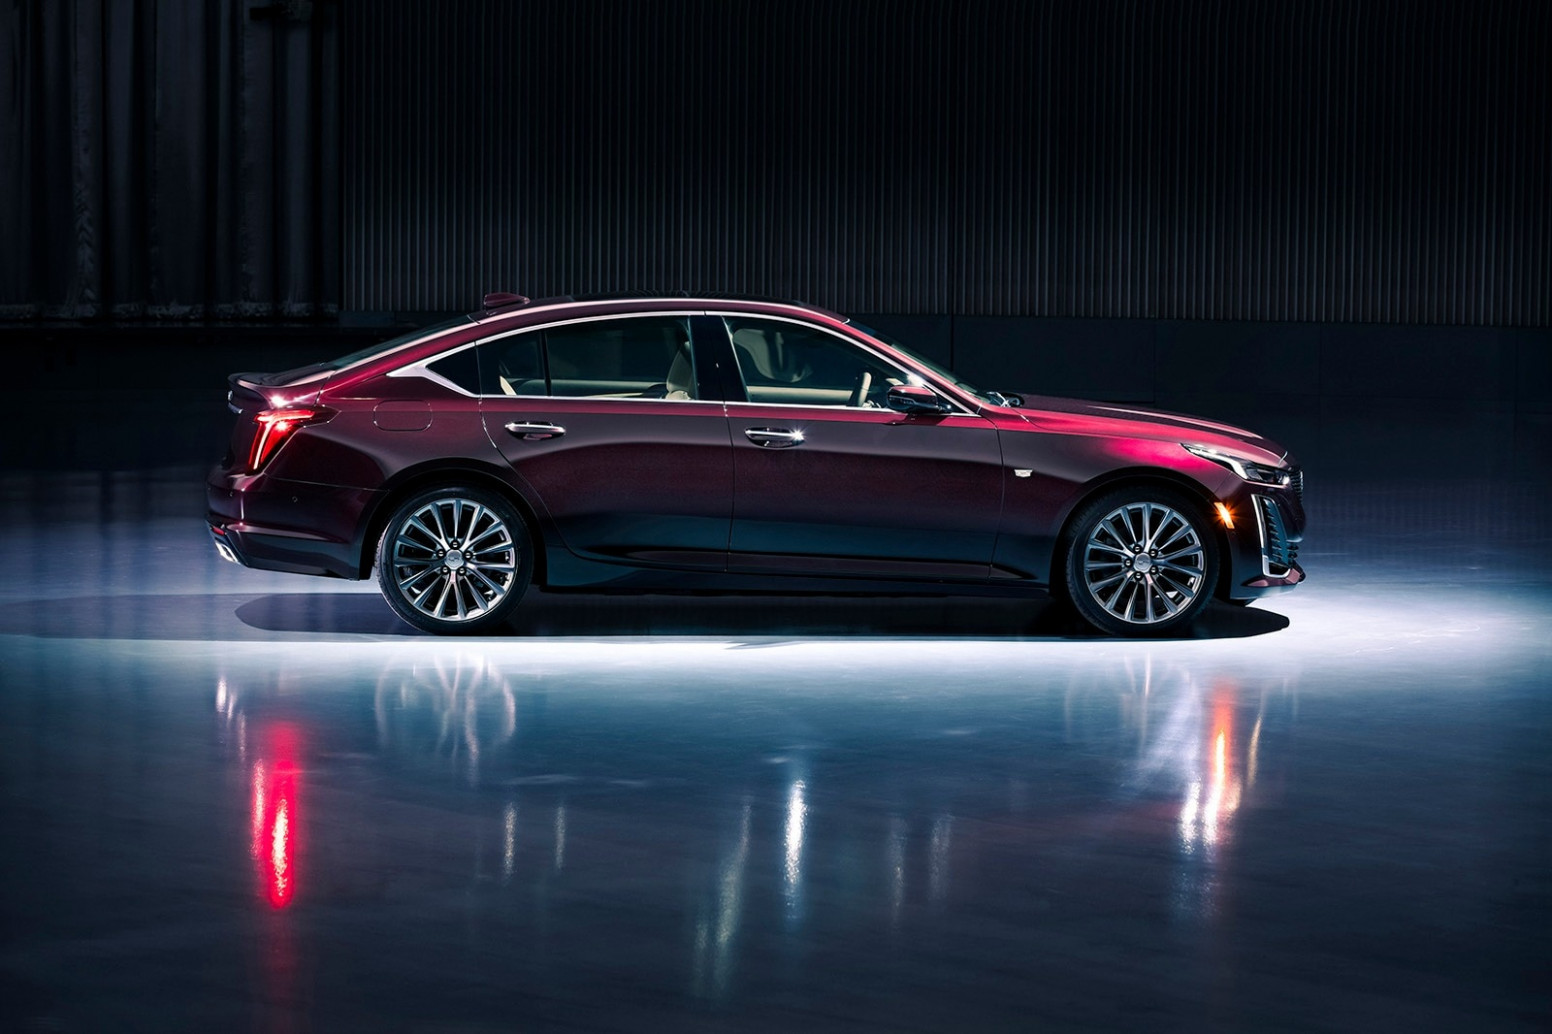 8 Cadillac CT8 Prices, Reviews, and Pictures | Edmunds - cadillac ats 2020 release date